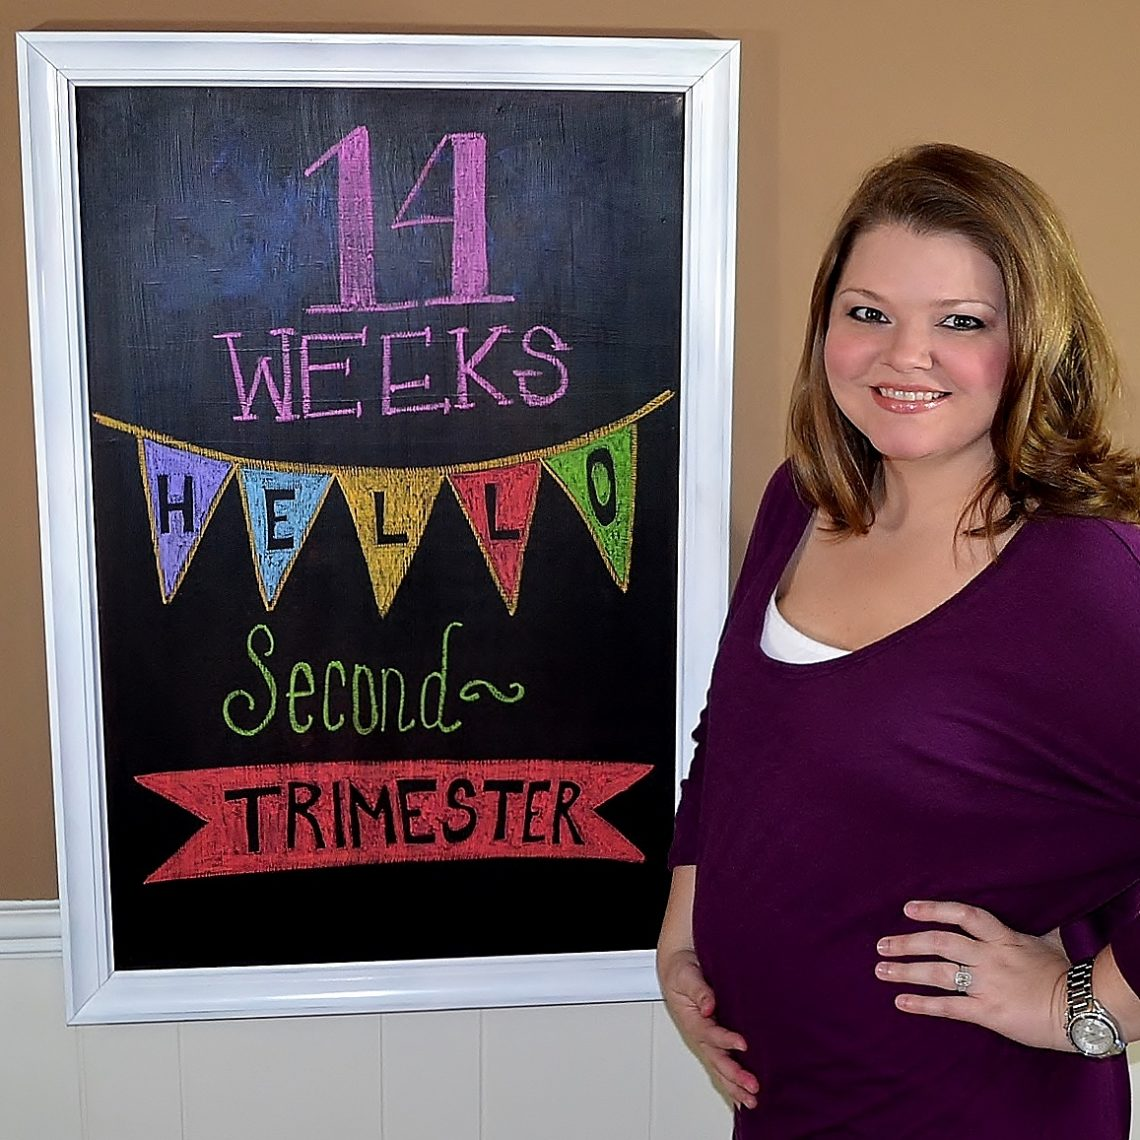 second trimester, pregnancy chalkboard